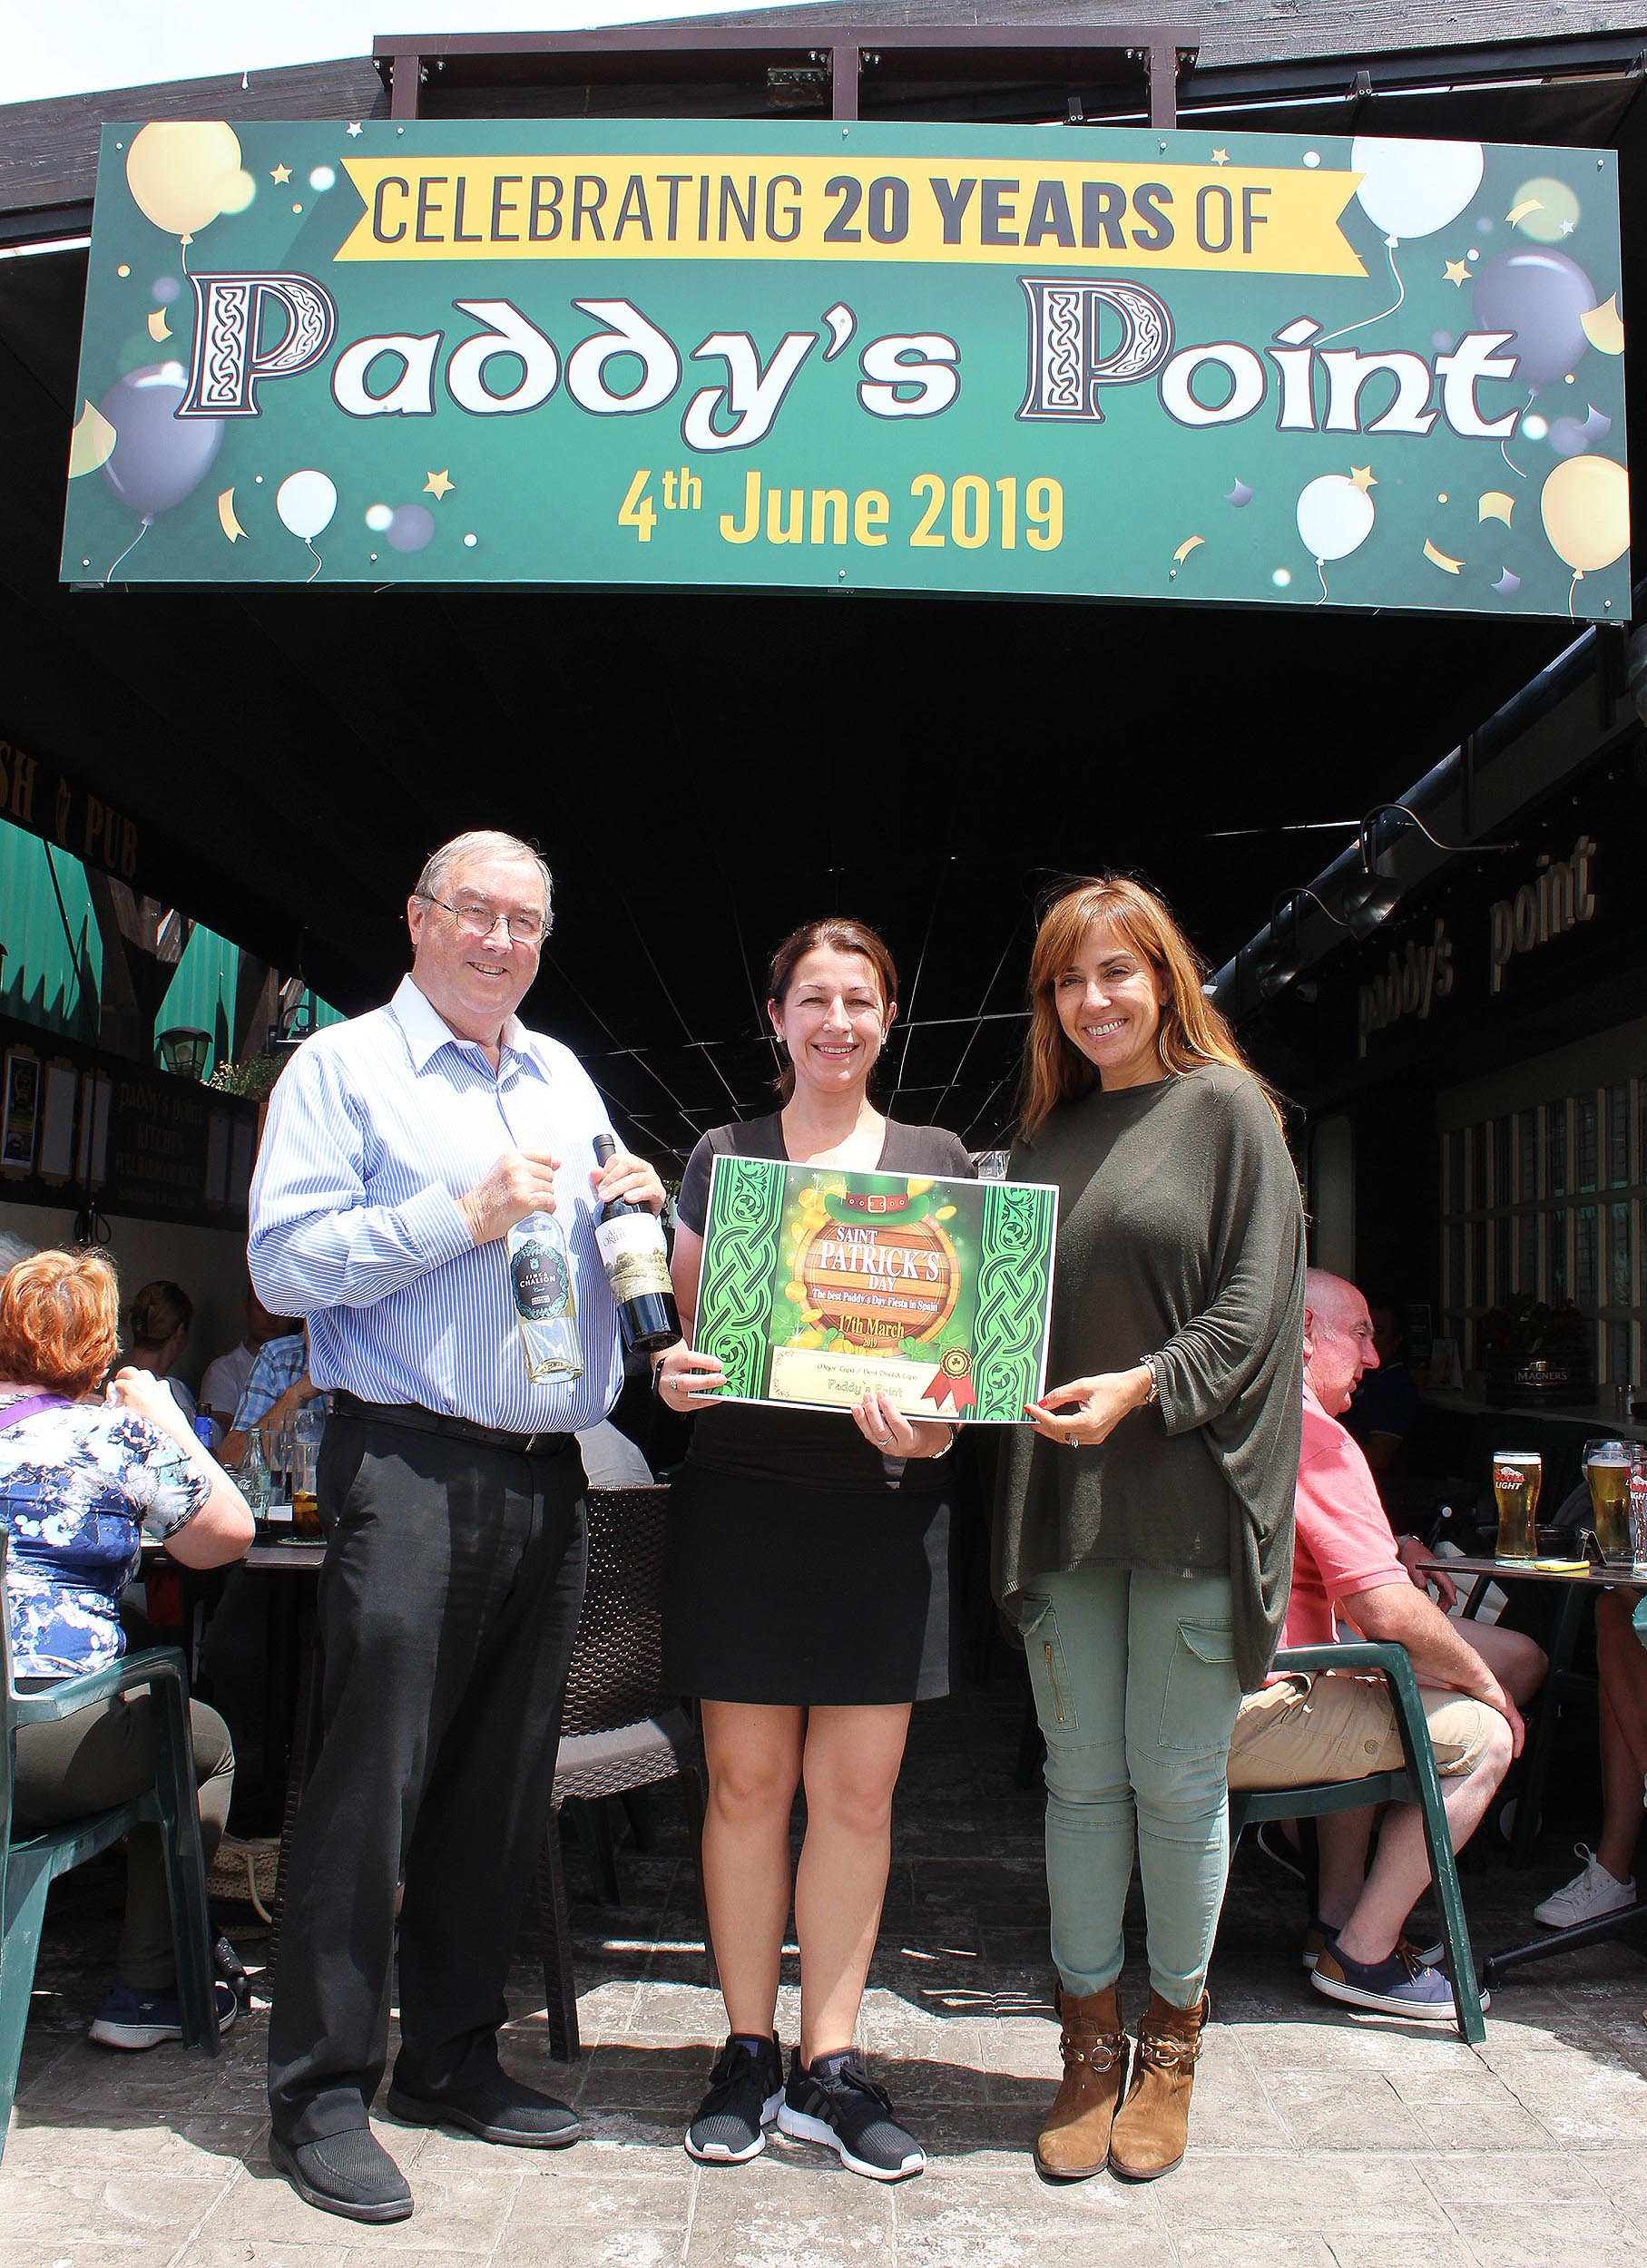 """""""Paddy's Point"""" in La Zenia who are celebrating their 20th anniversary this year won the food award"""